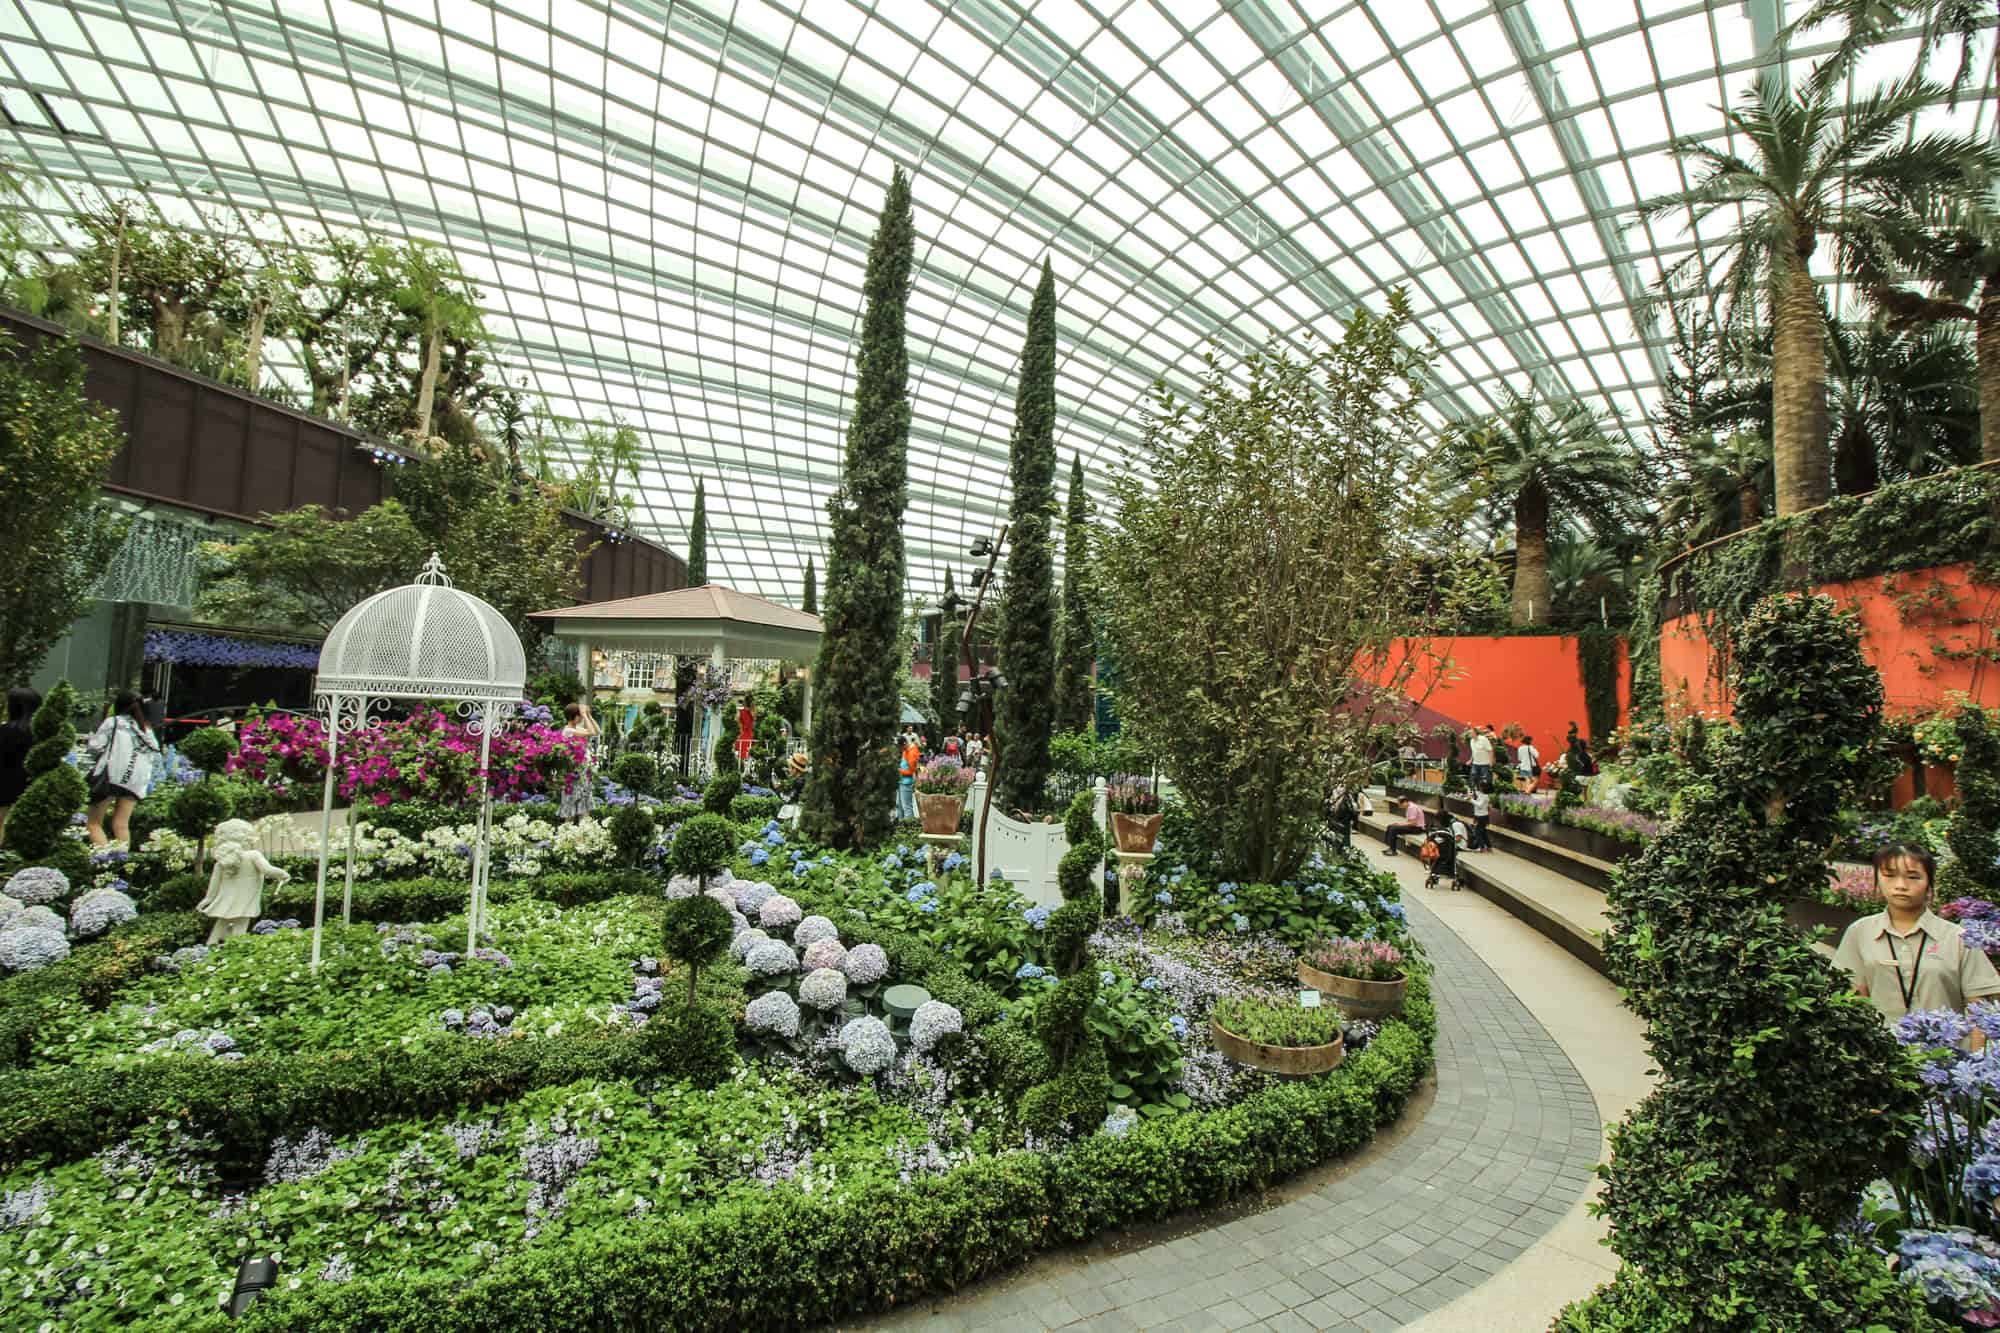 Photo Spots in Singapore: Flower Dome